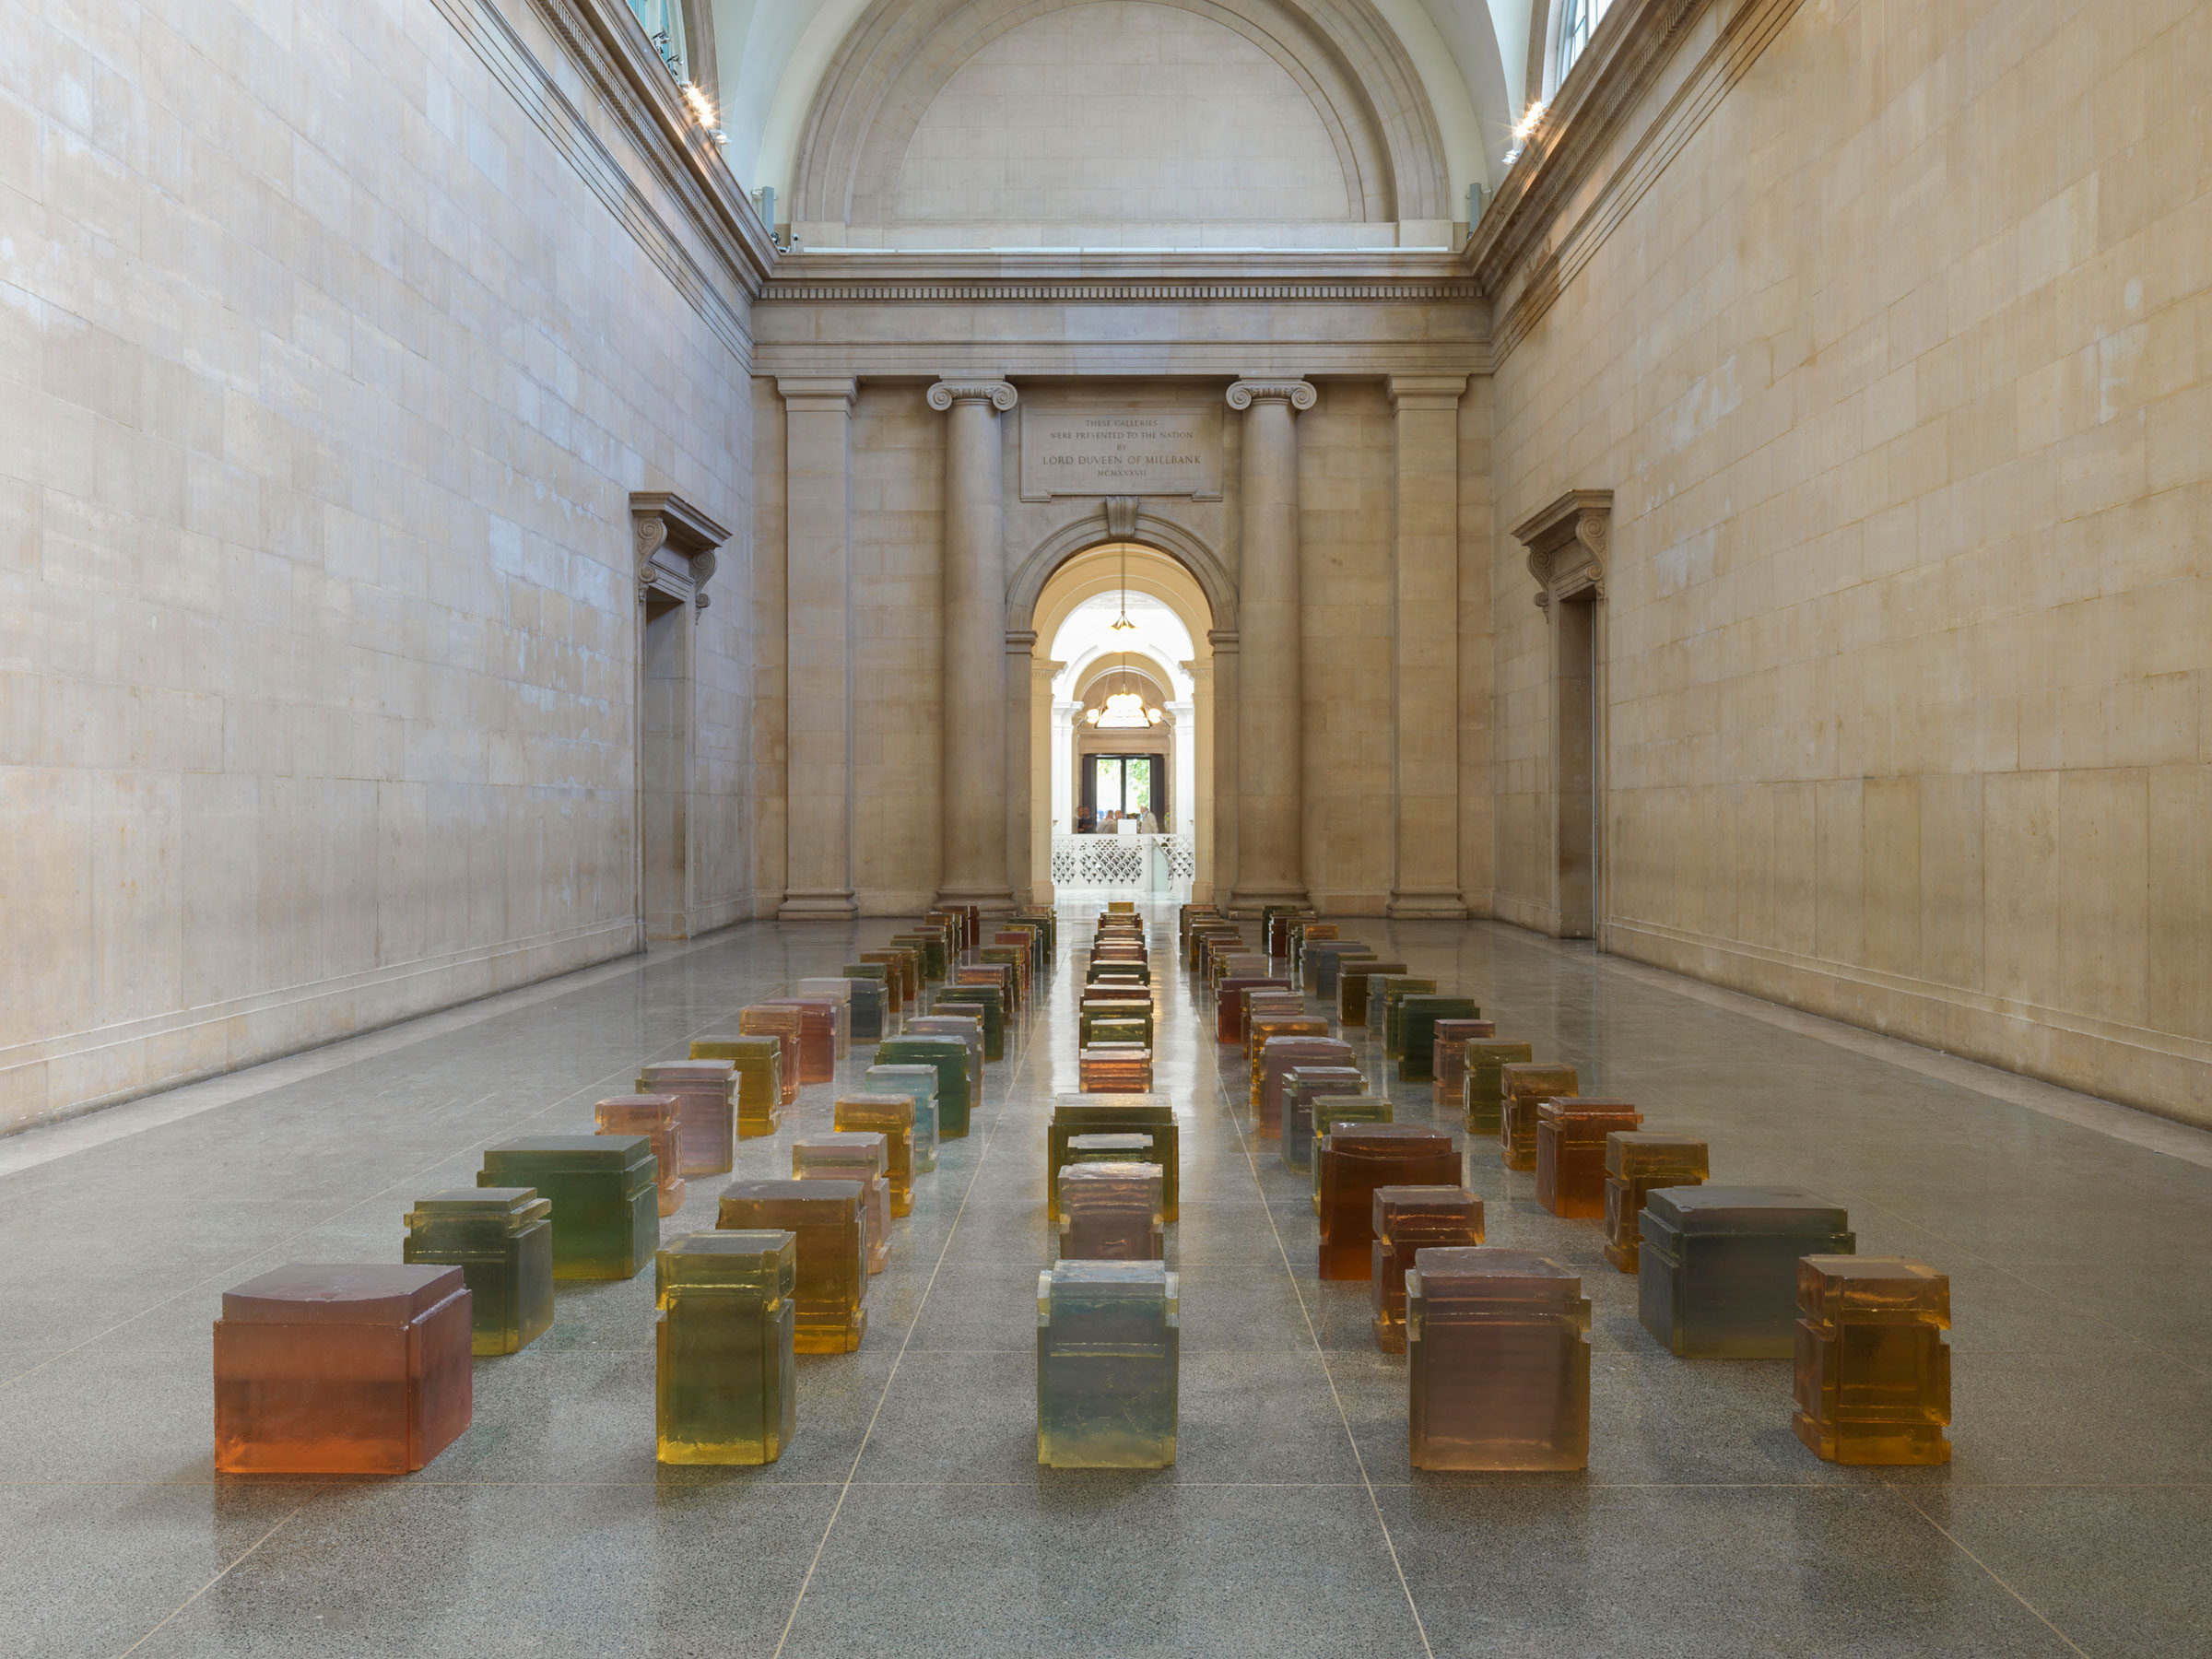 Rachel Whiteread, Untitled (One Hundred Spaces), 1995, Resin, Various dimensions. Pinault Collection © Rachel Whiteread. Photo © Tate (Seraphina Neville and Andrew Dunkley). Tate Britain celebrates 25 years of Whiteread's sculpture